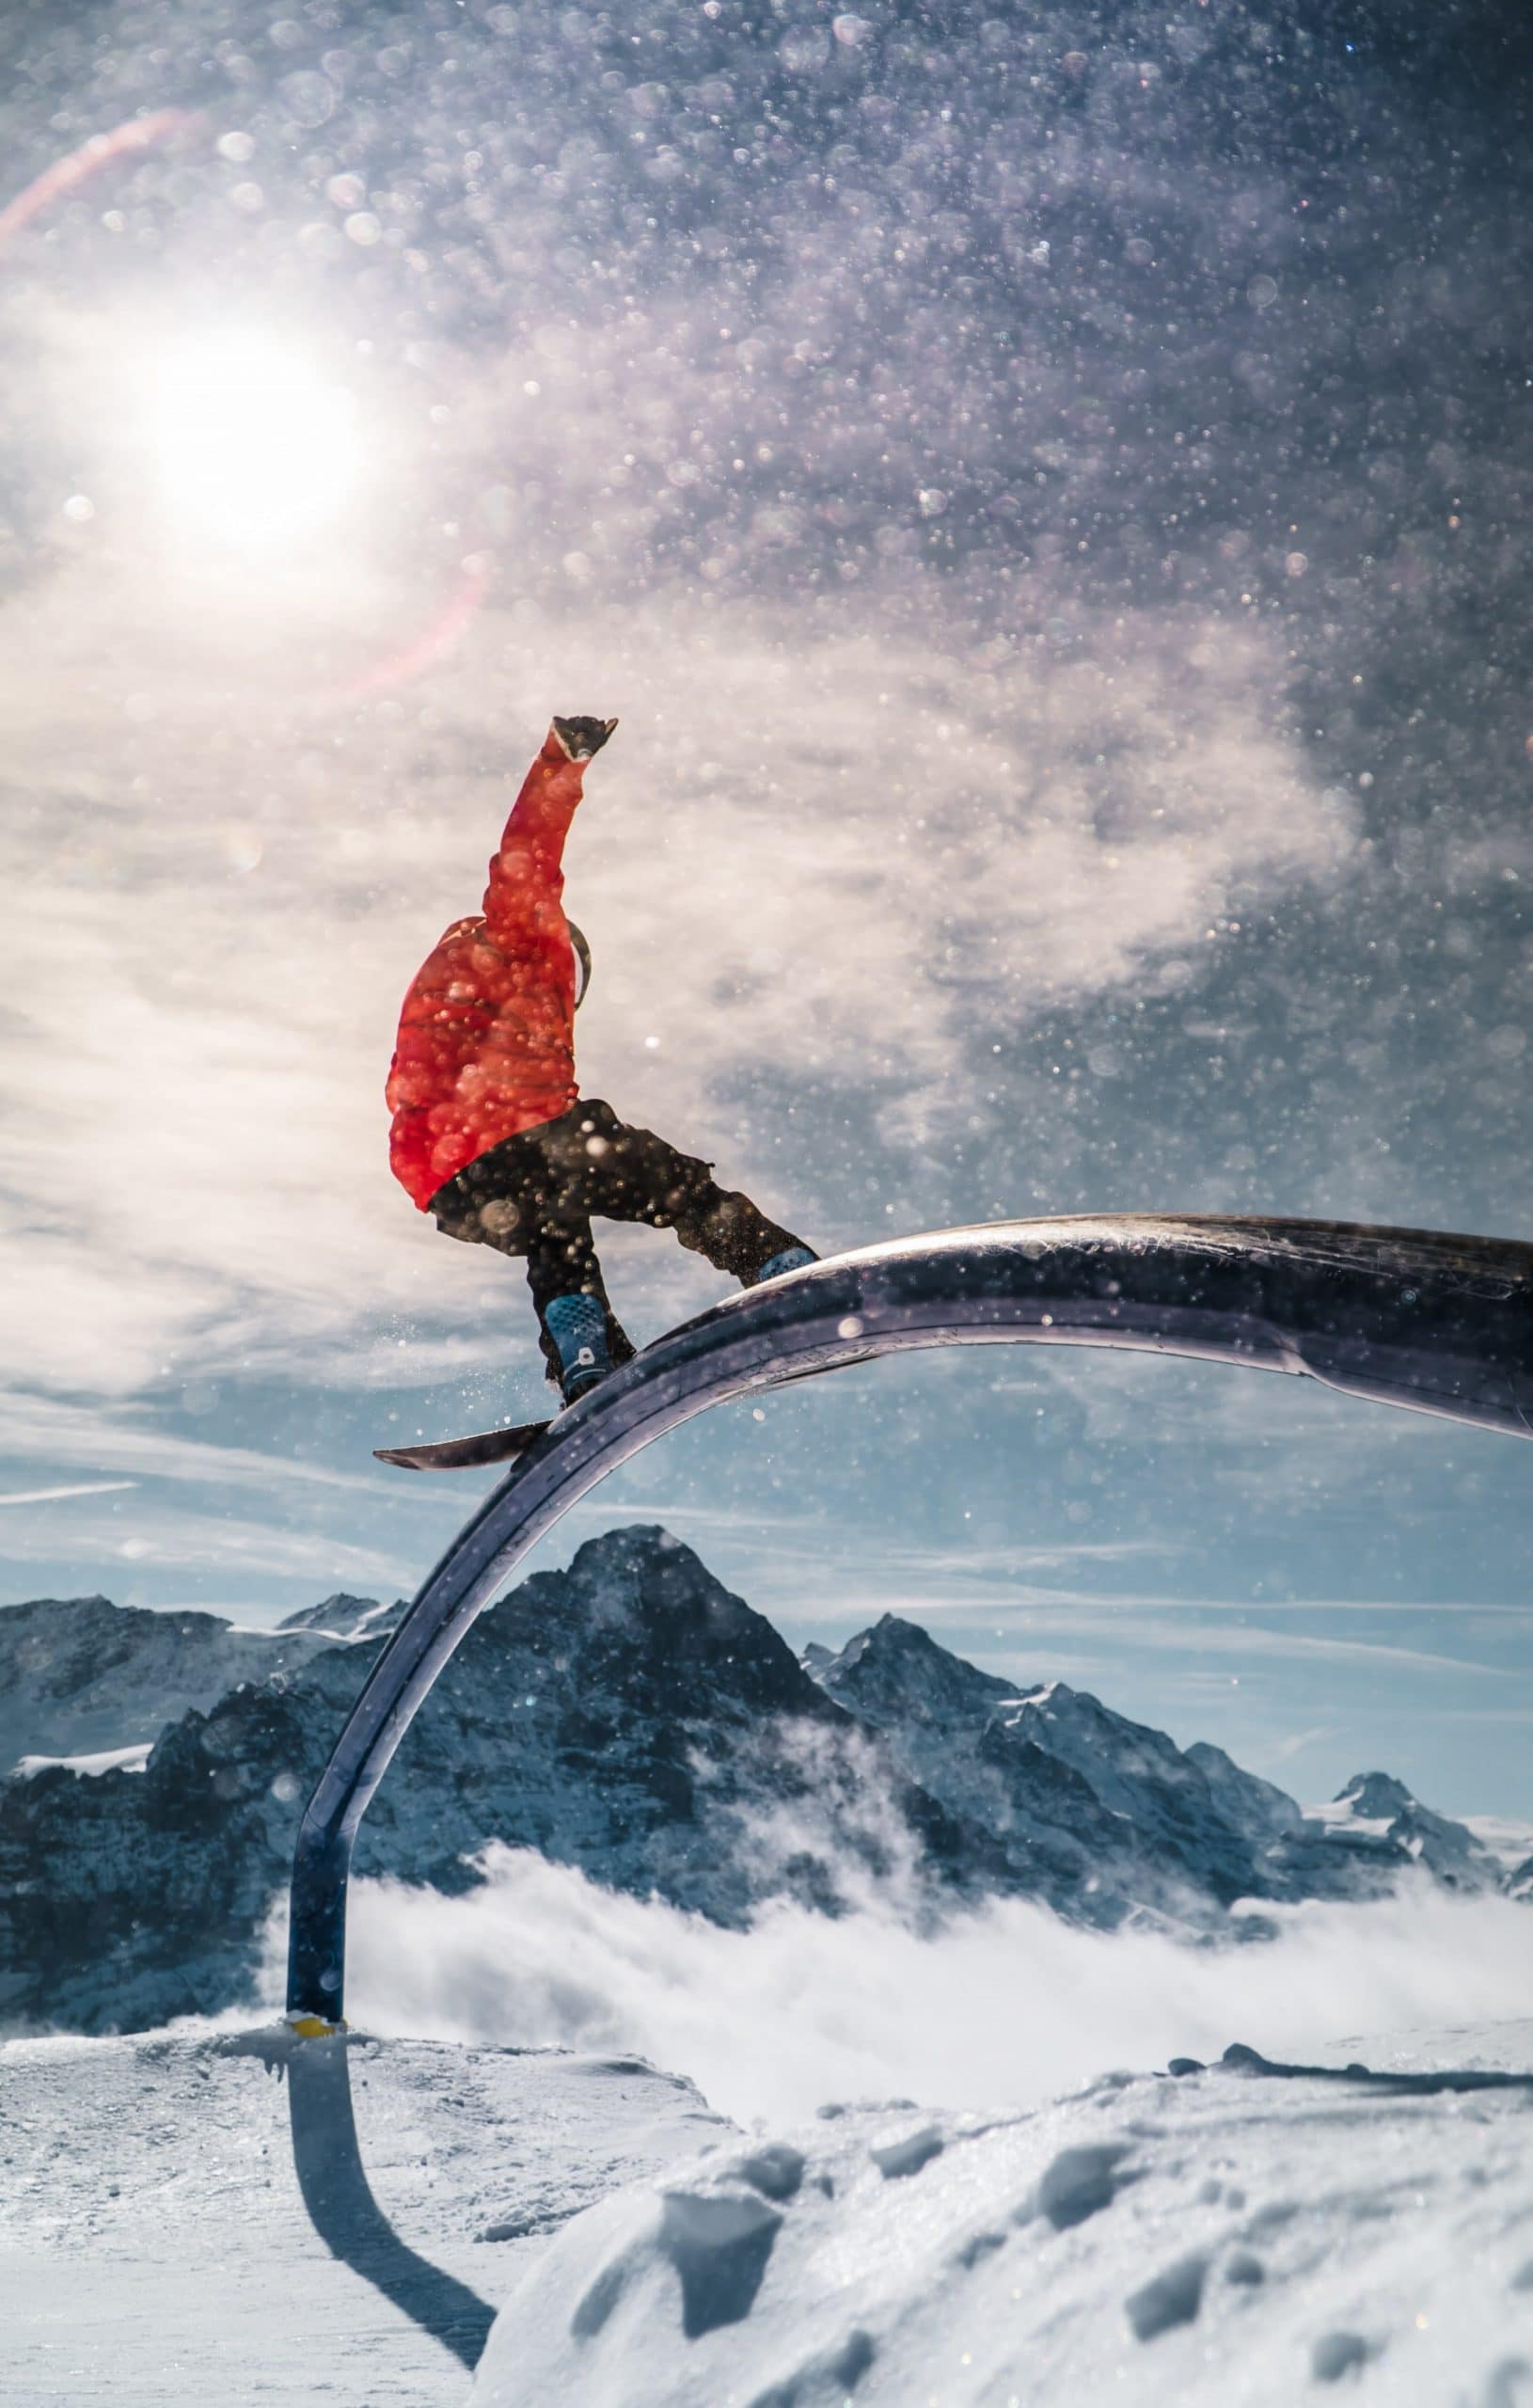 Best Wrist Guards for Snowboarding